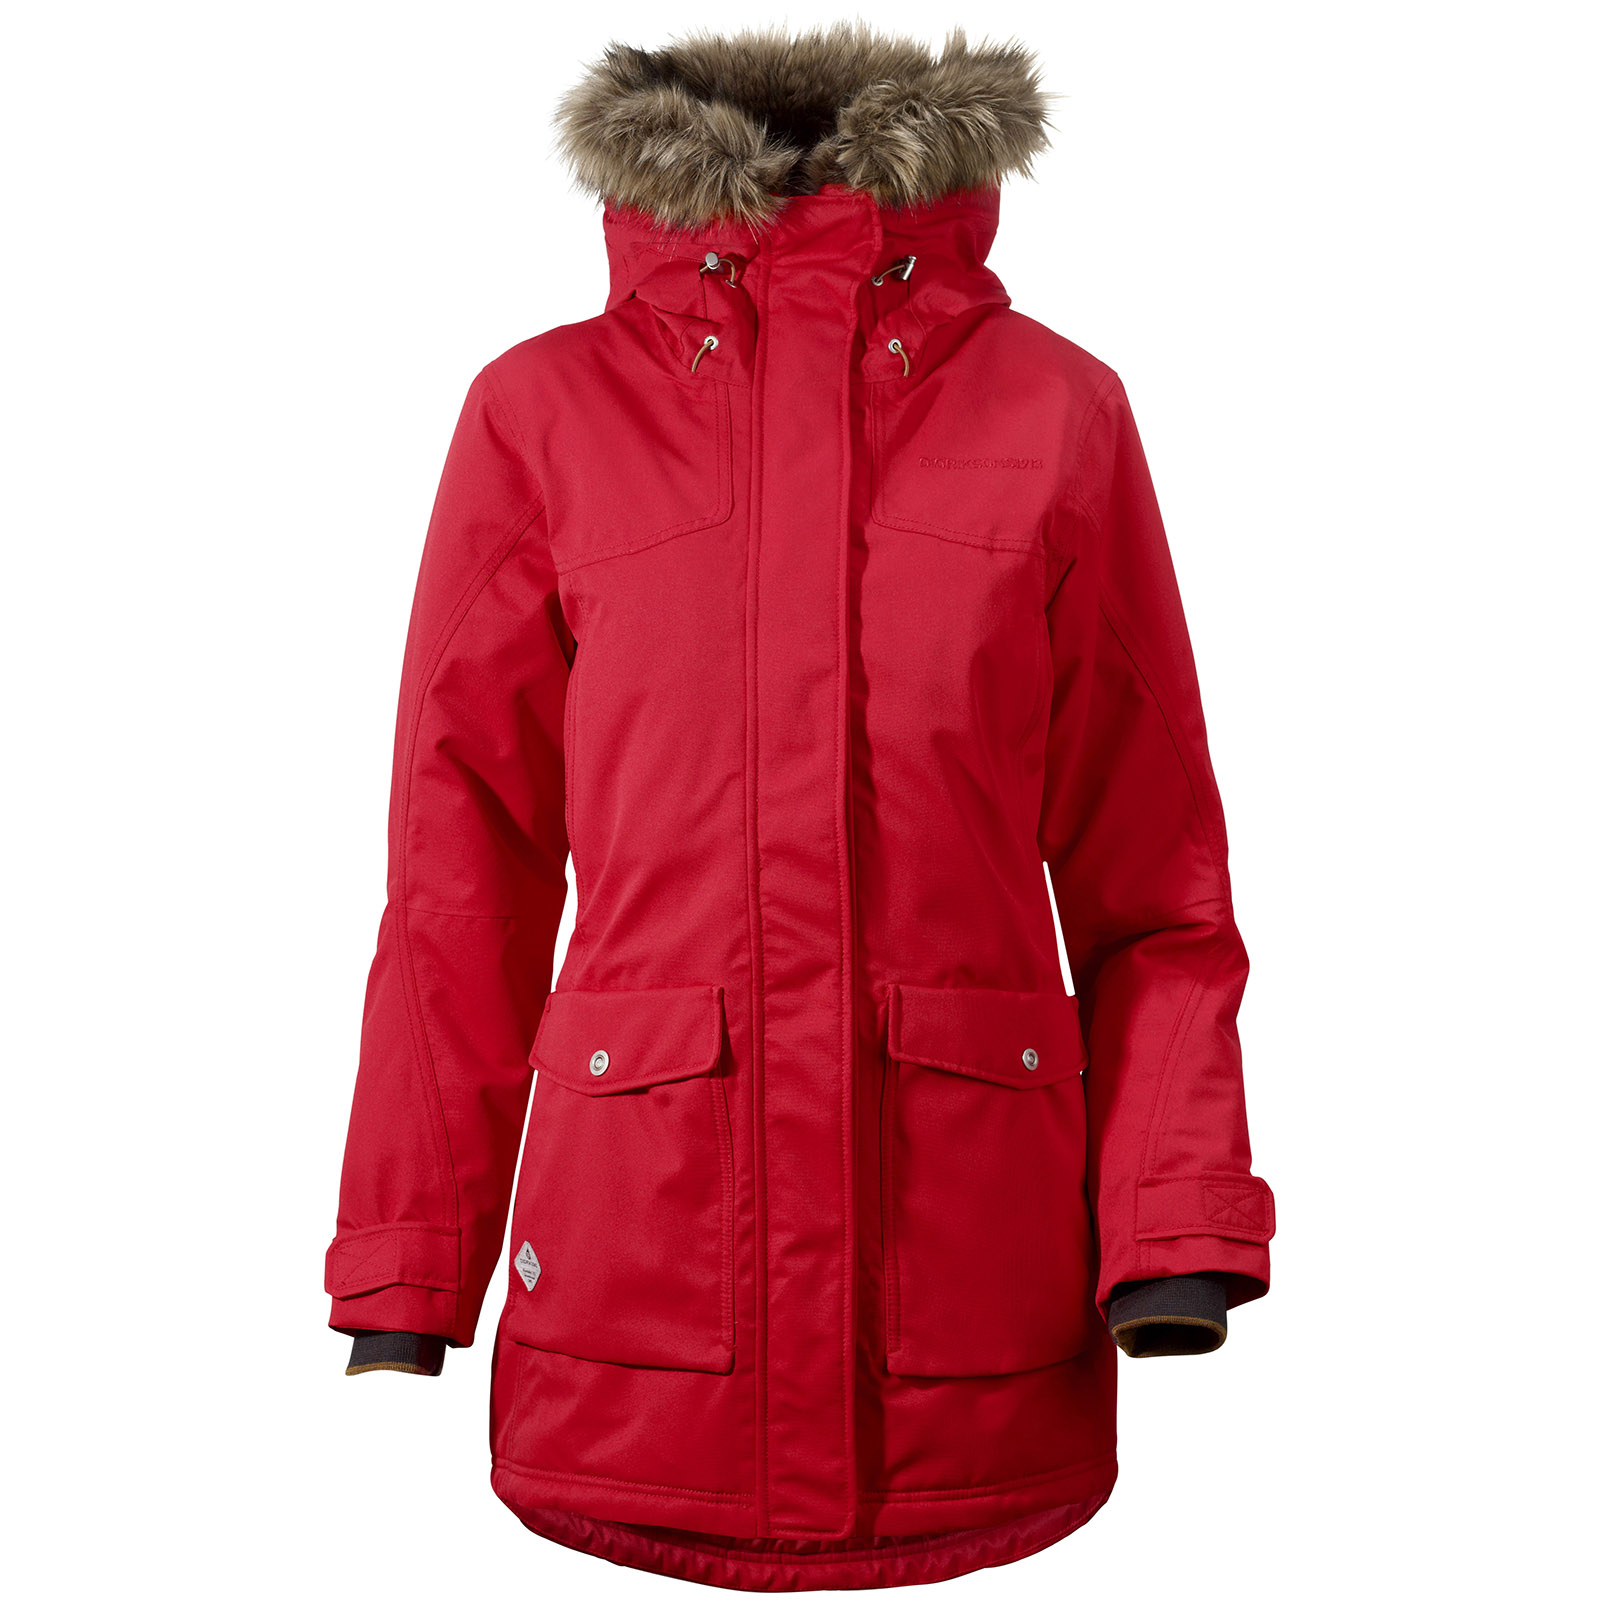 Didriksons Ladies Shelter Waterproof Parka RRP £190 | eBay